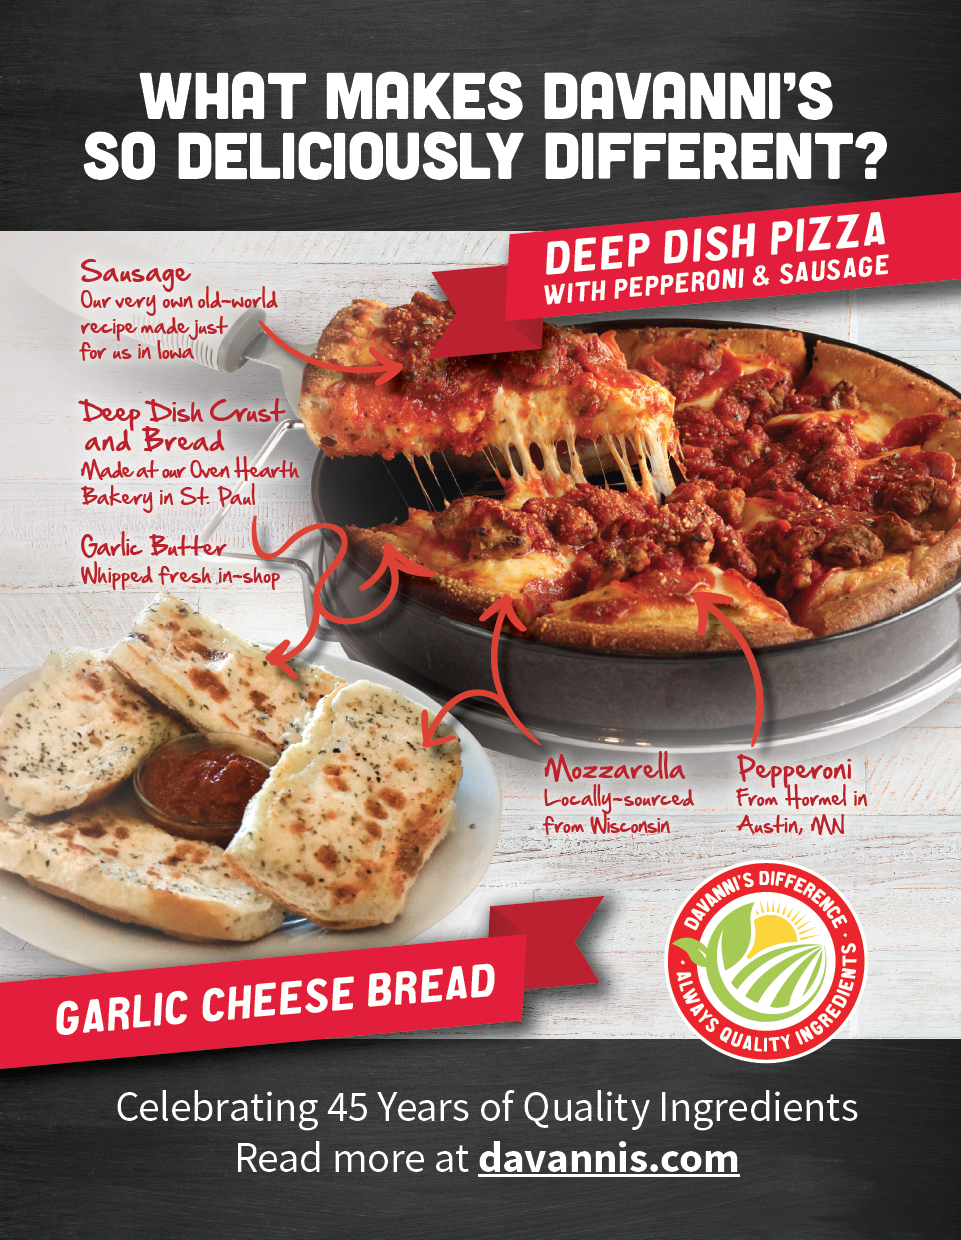 What makes Davanni's so deliciously different? Davanni's Deep Dish Pizza and Garlic Cheese Bread are made with locally sourced ingredients.